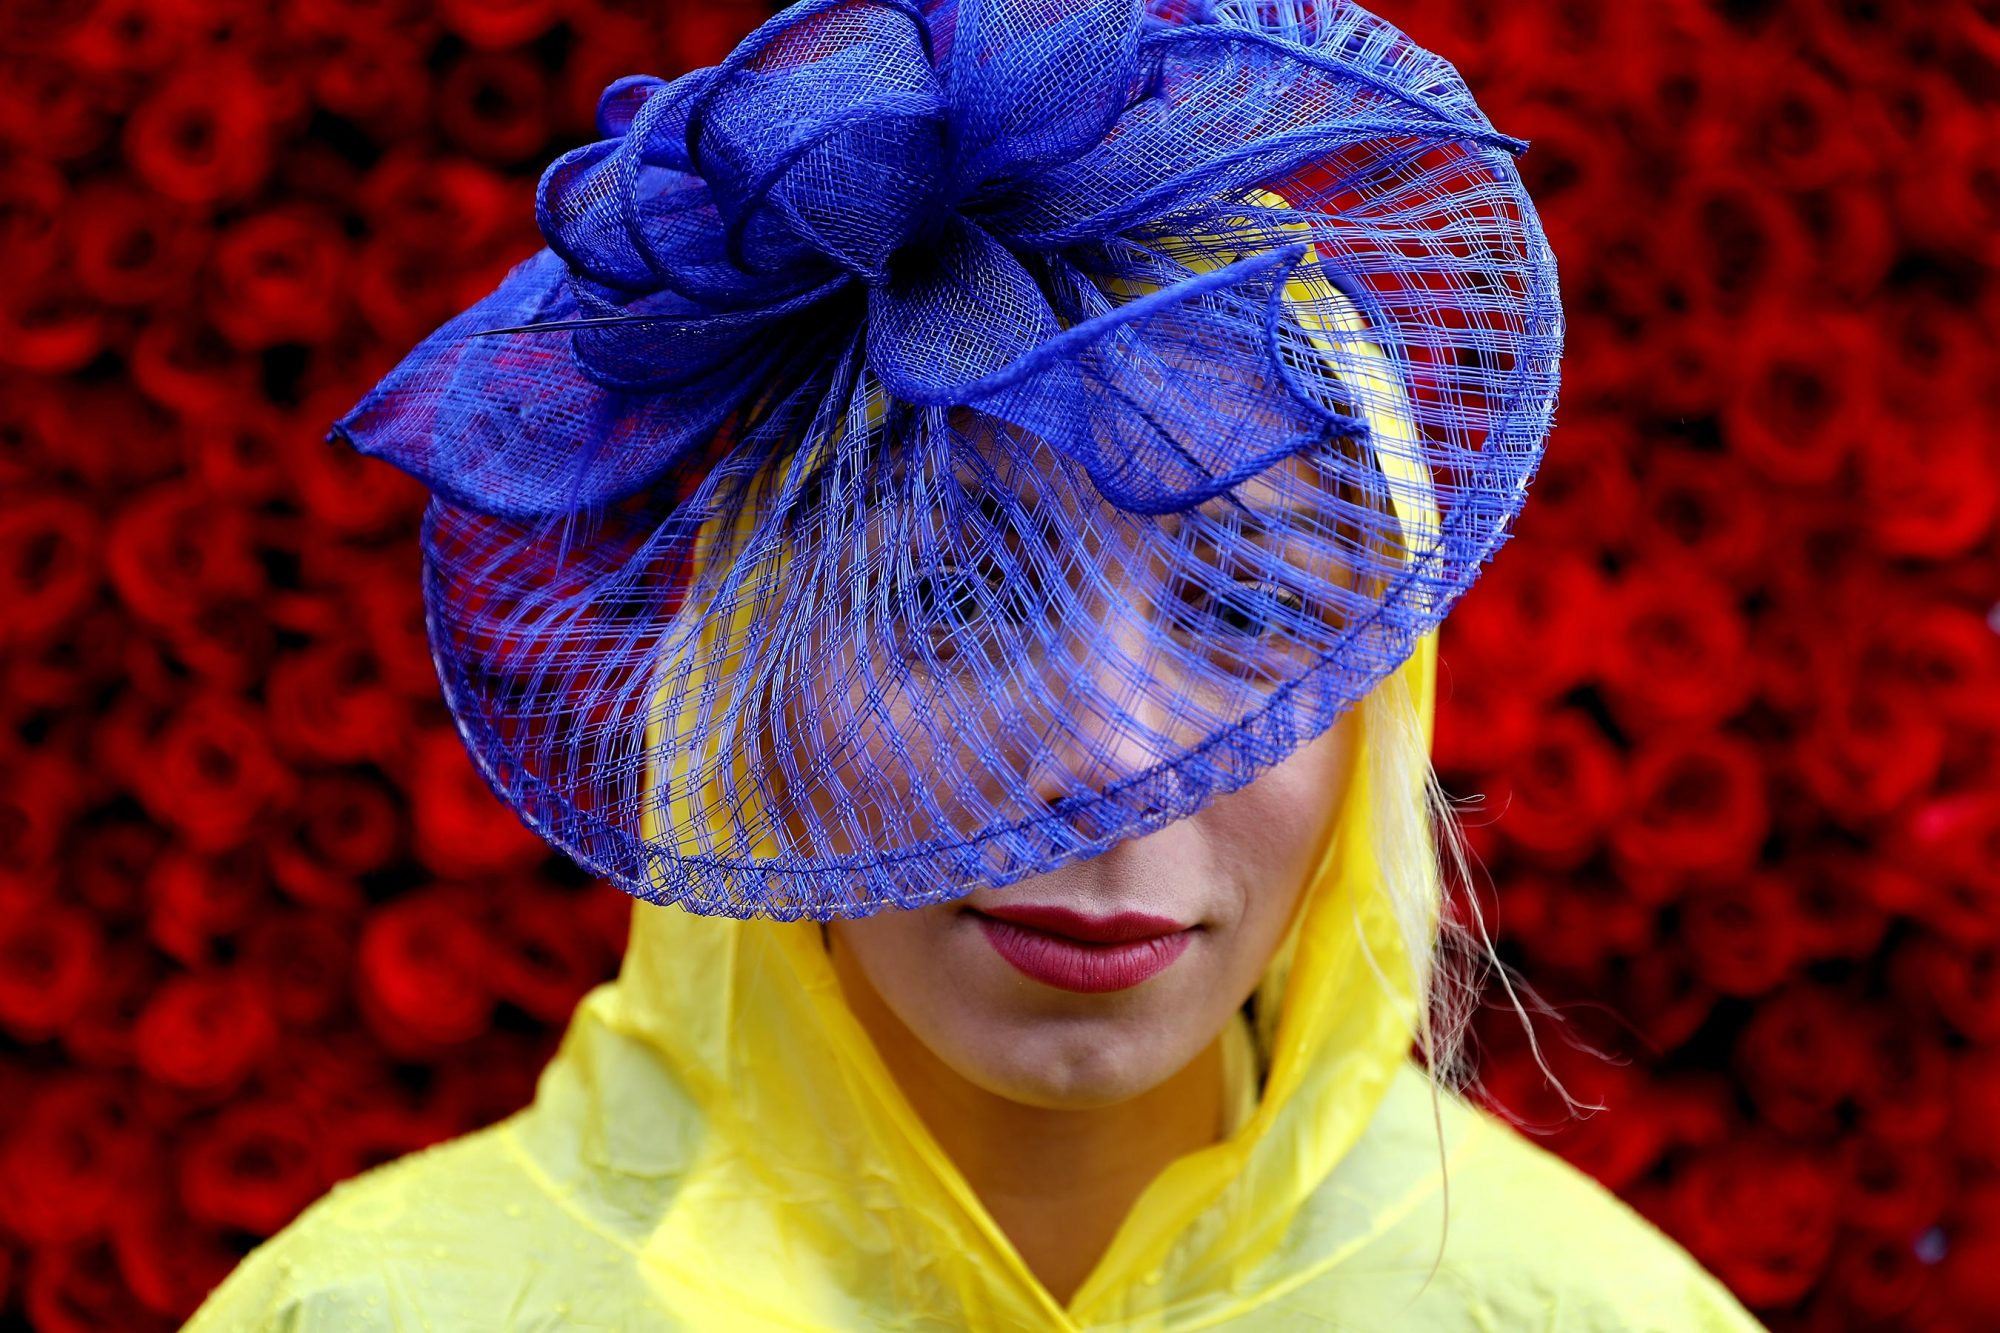 A woman wearing a festive hat poses prior to the 143rd running of the Kentucky Derby